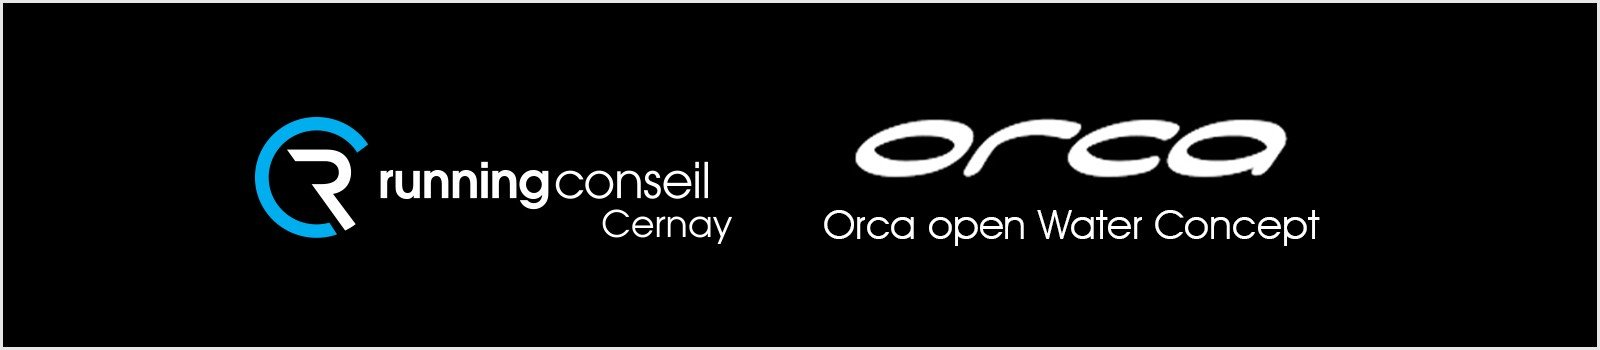 Orca open Water Concept